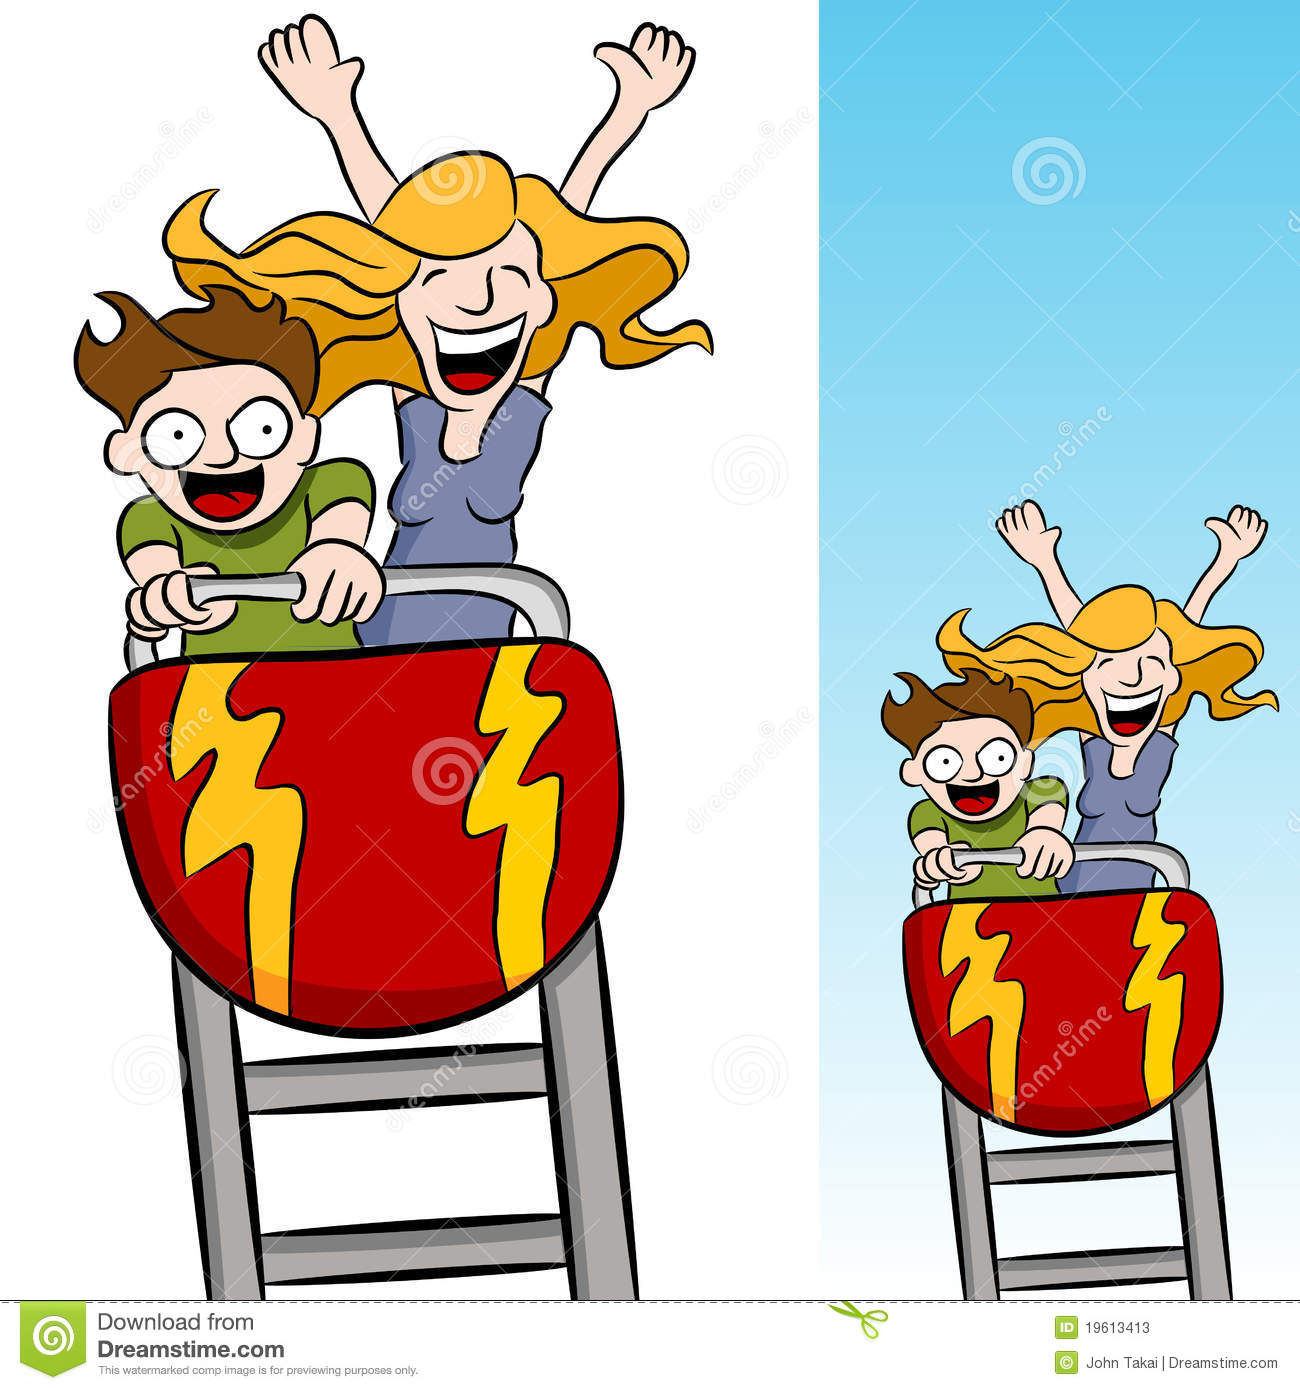 Roller coaster clipart fair day. Rollercoaster stock illustrations mother freeuse library